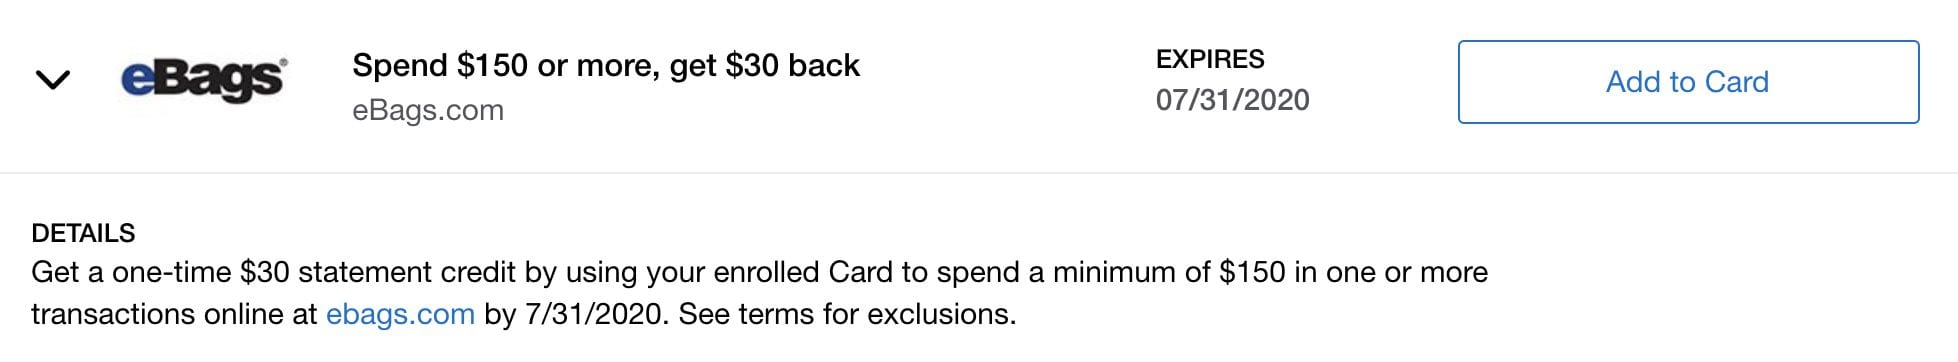 amex offer ebags